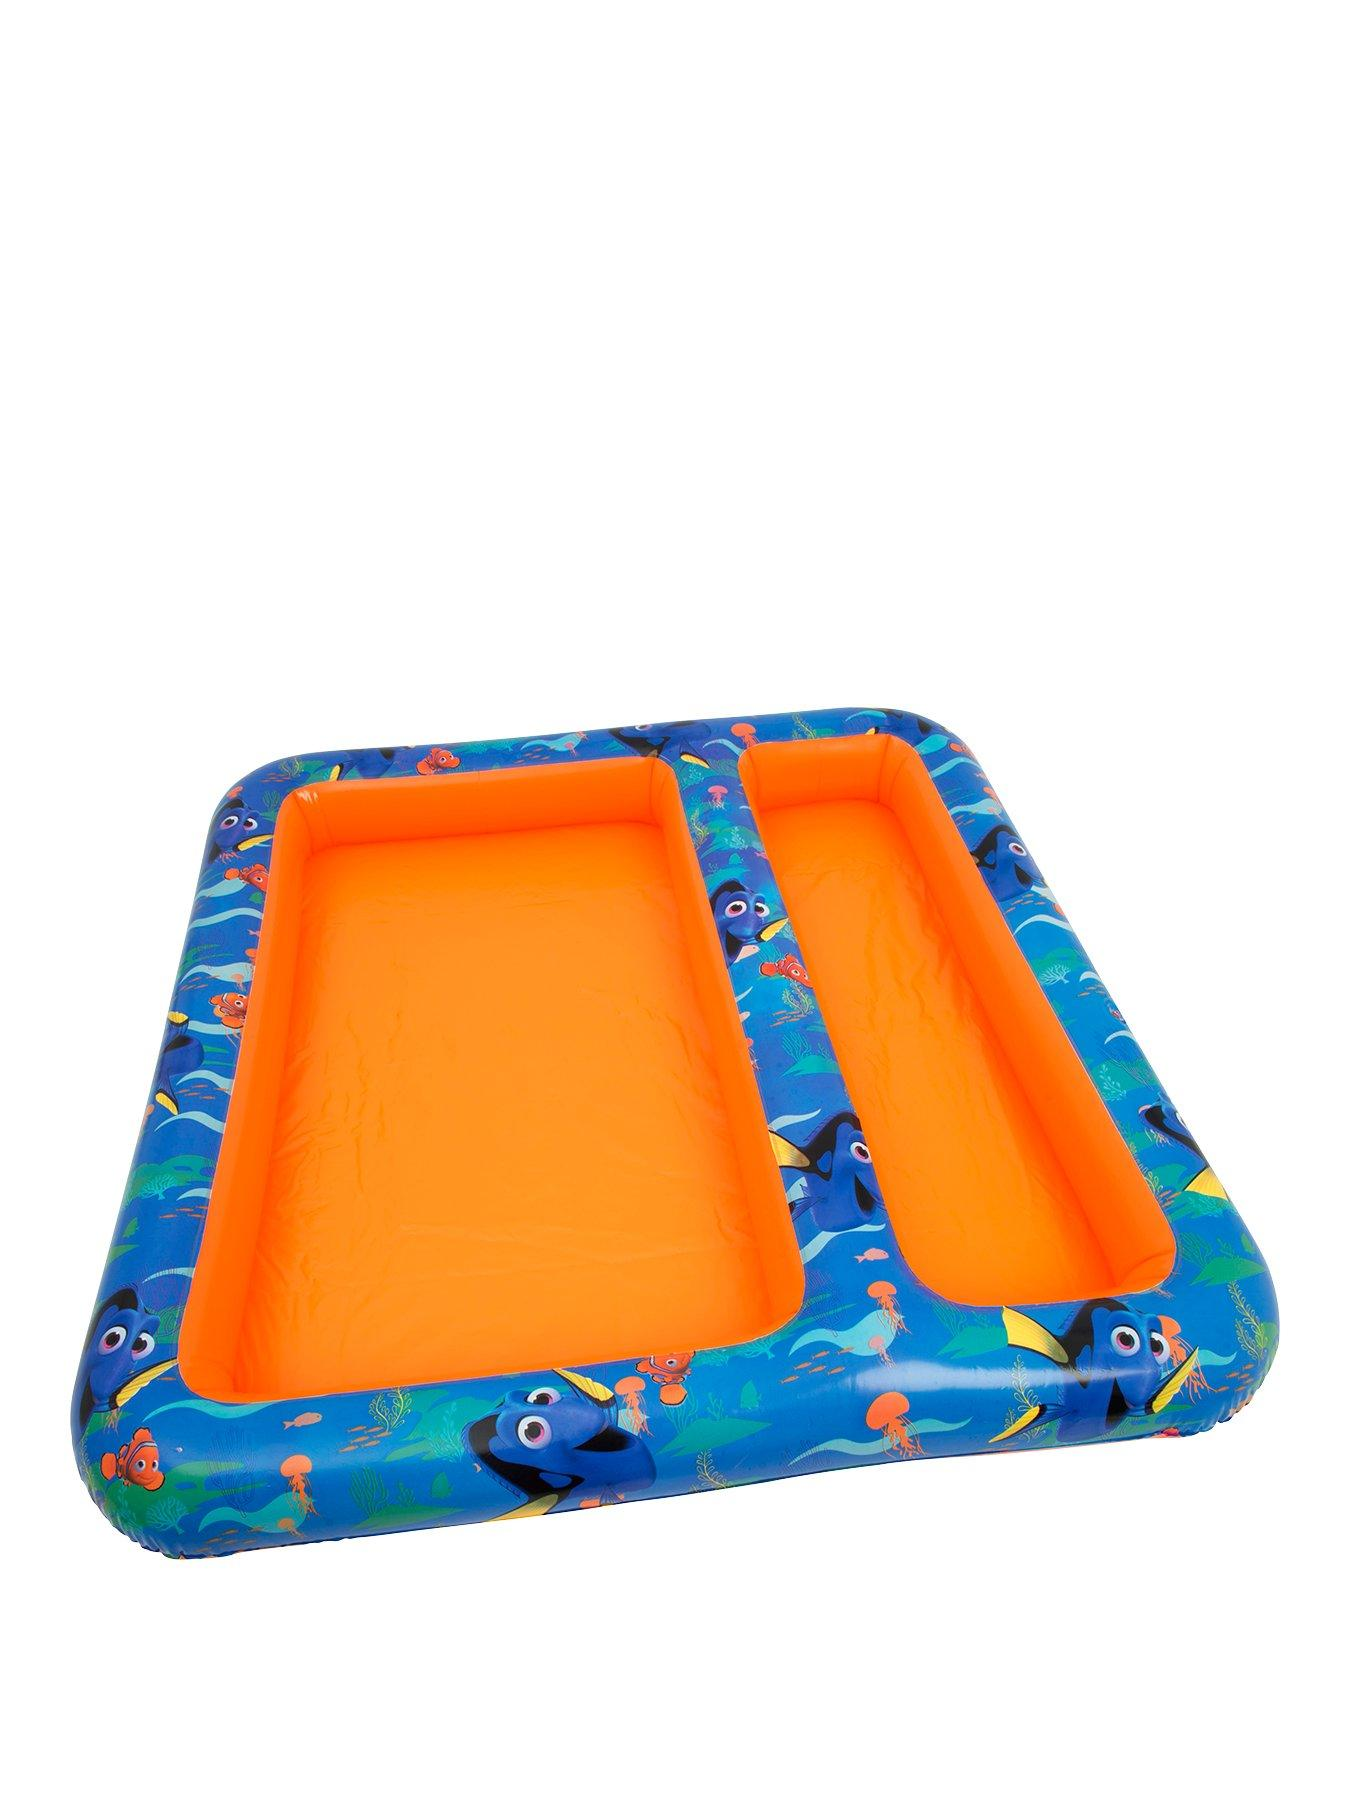 Finding Dory Inflatable Water Play Mat